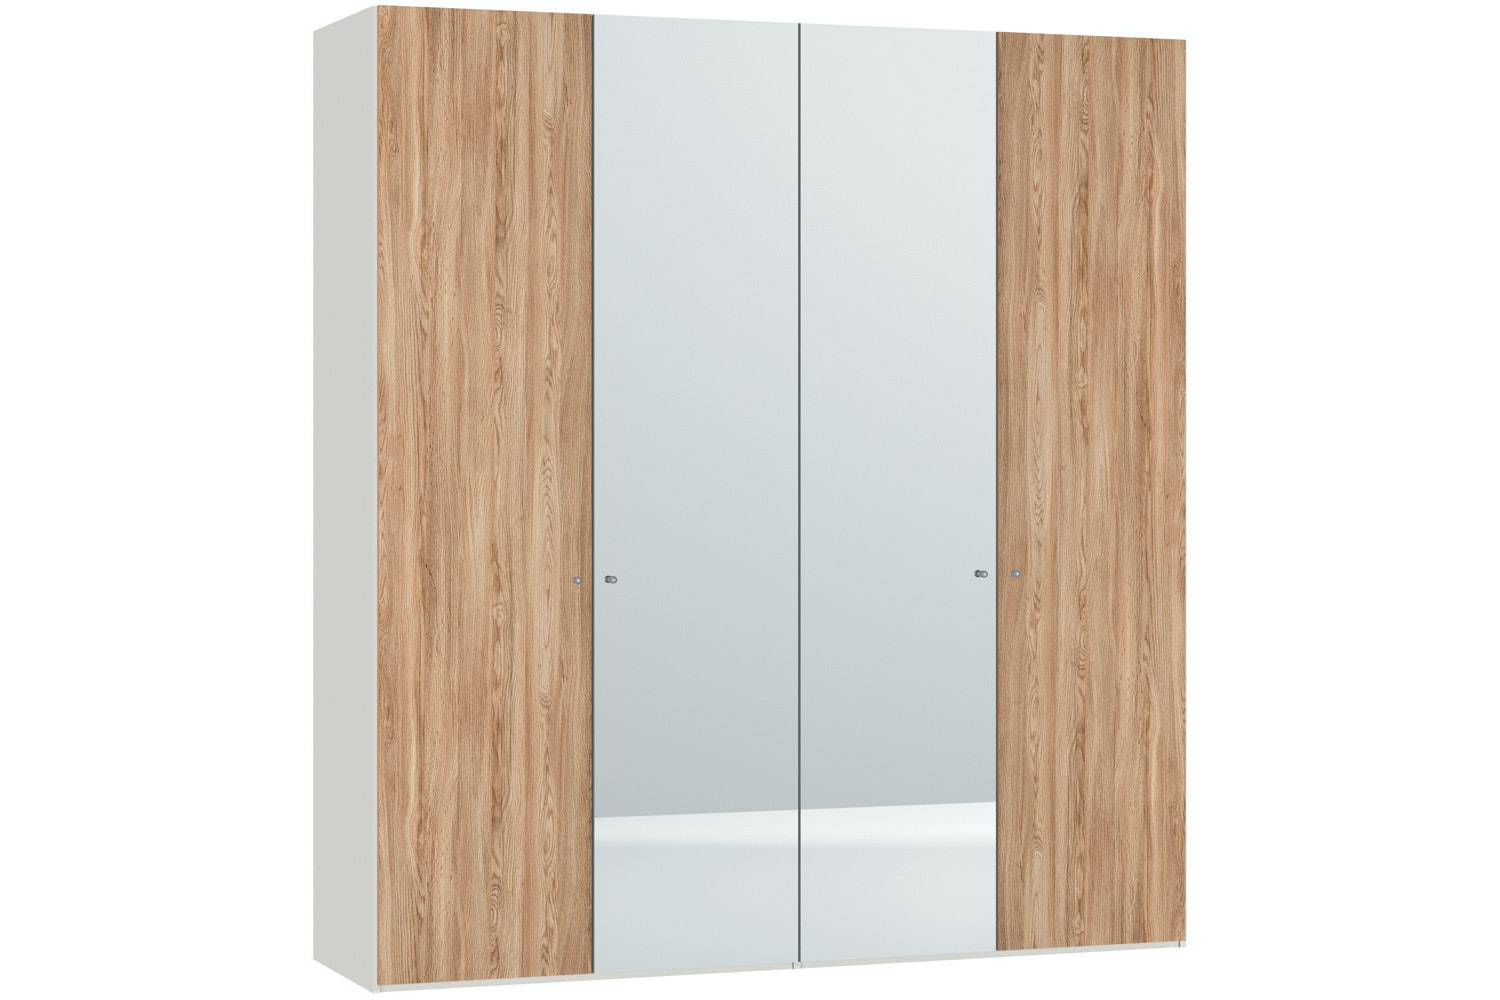 Christine Hinged 4 Door Wardrobe 203Cm |Oak + Mirror